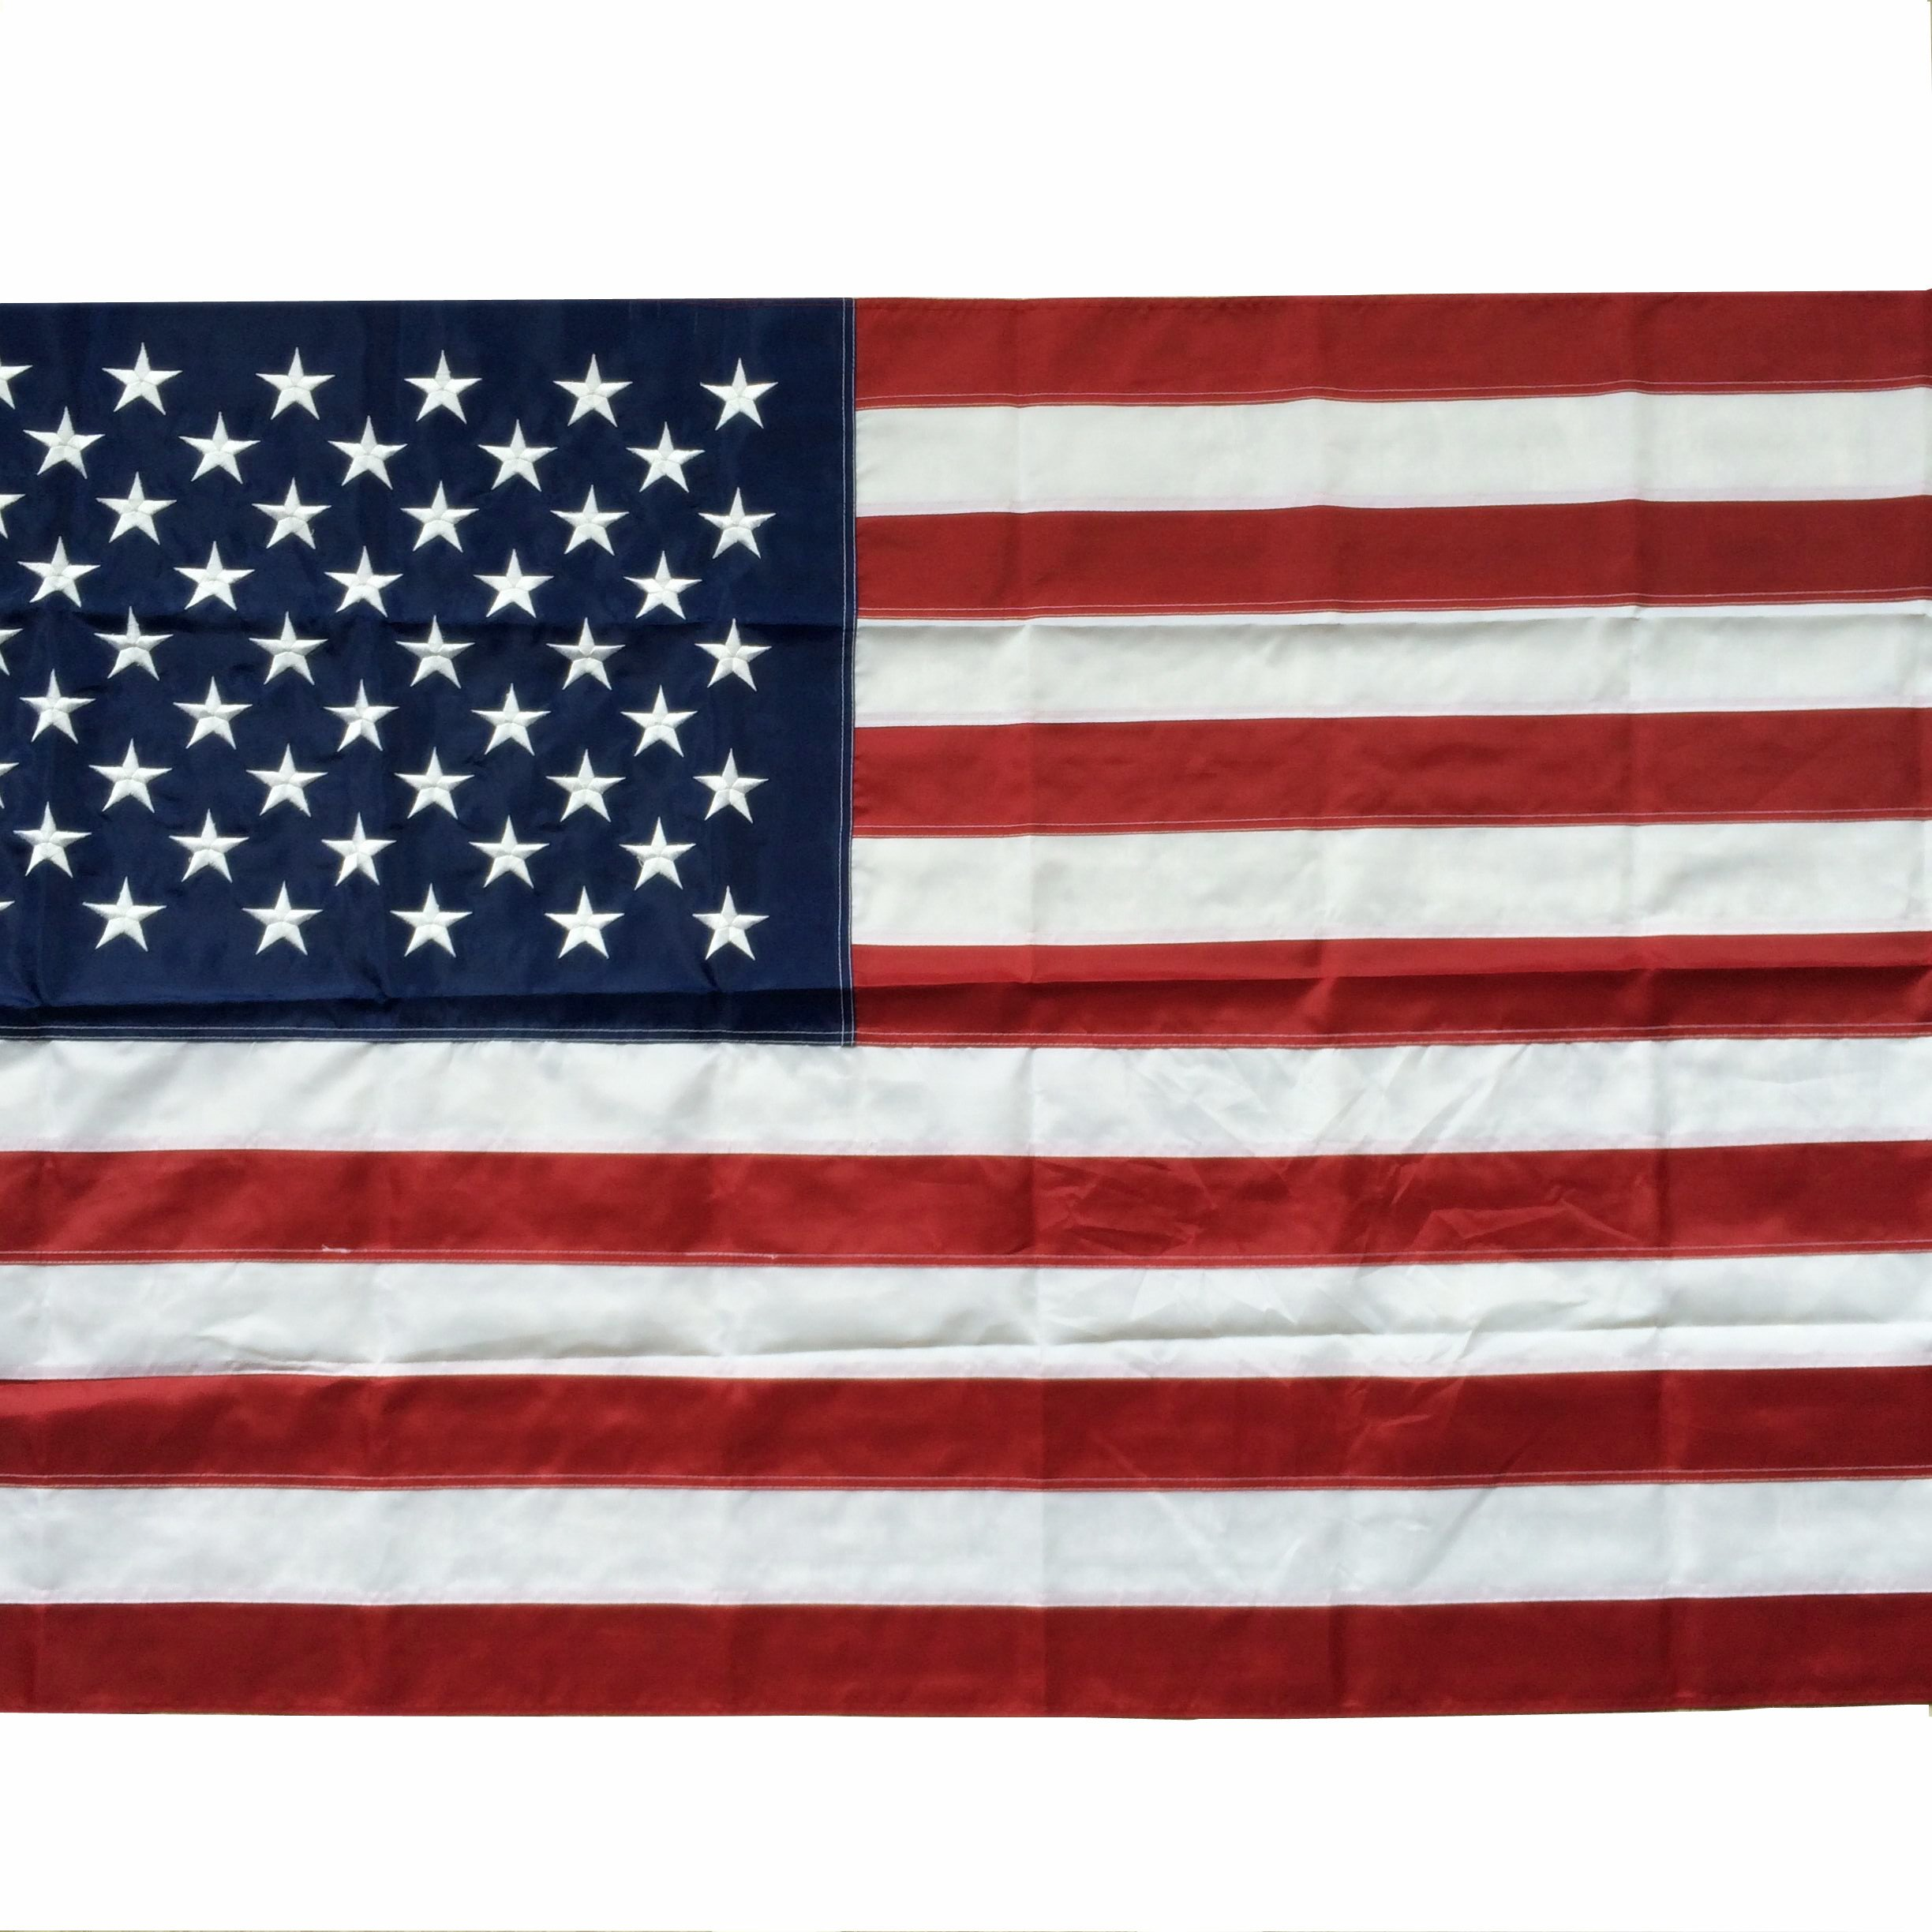 OTLIVE 3x5 ft Home Garden Flags Embroidery Starts and Stripes American Flag Nylon Flag Indoor/Outdoor